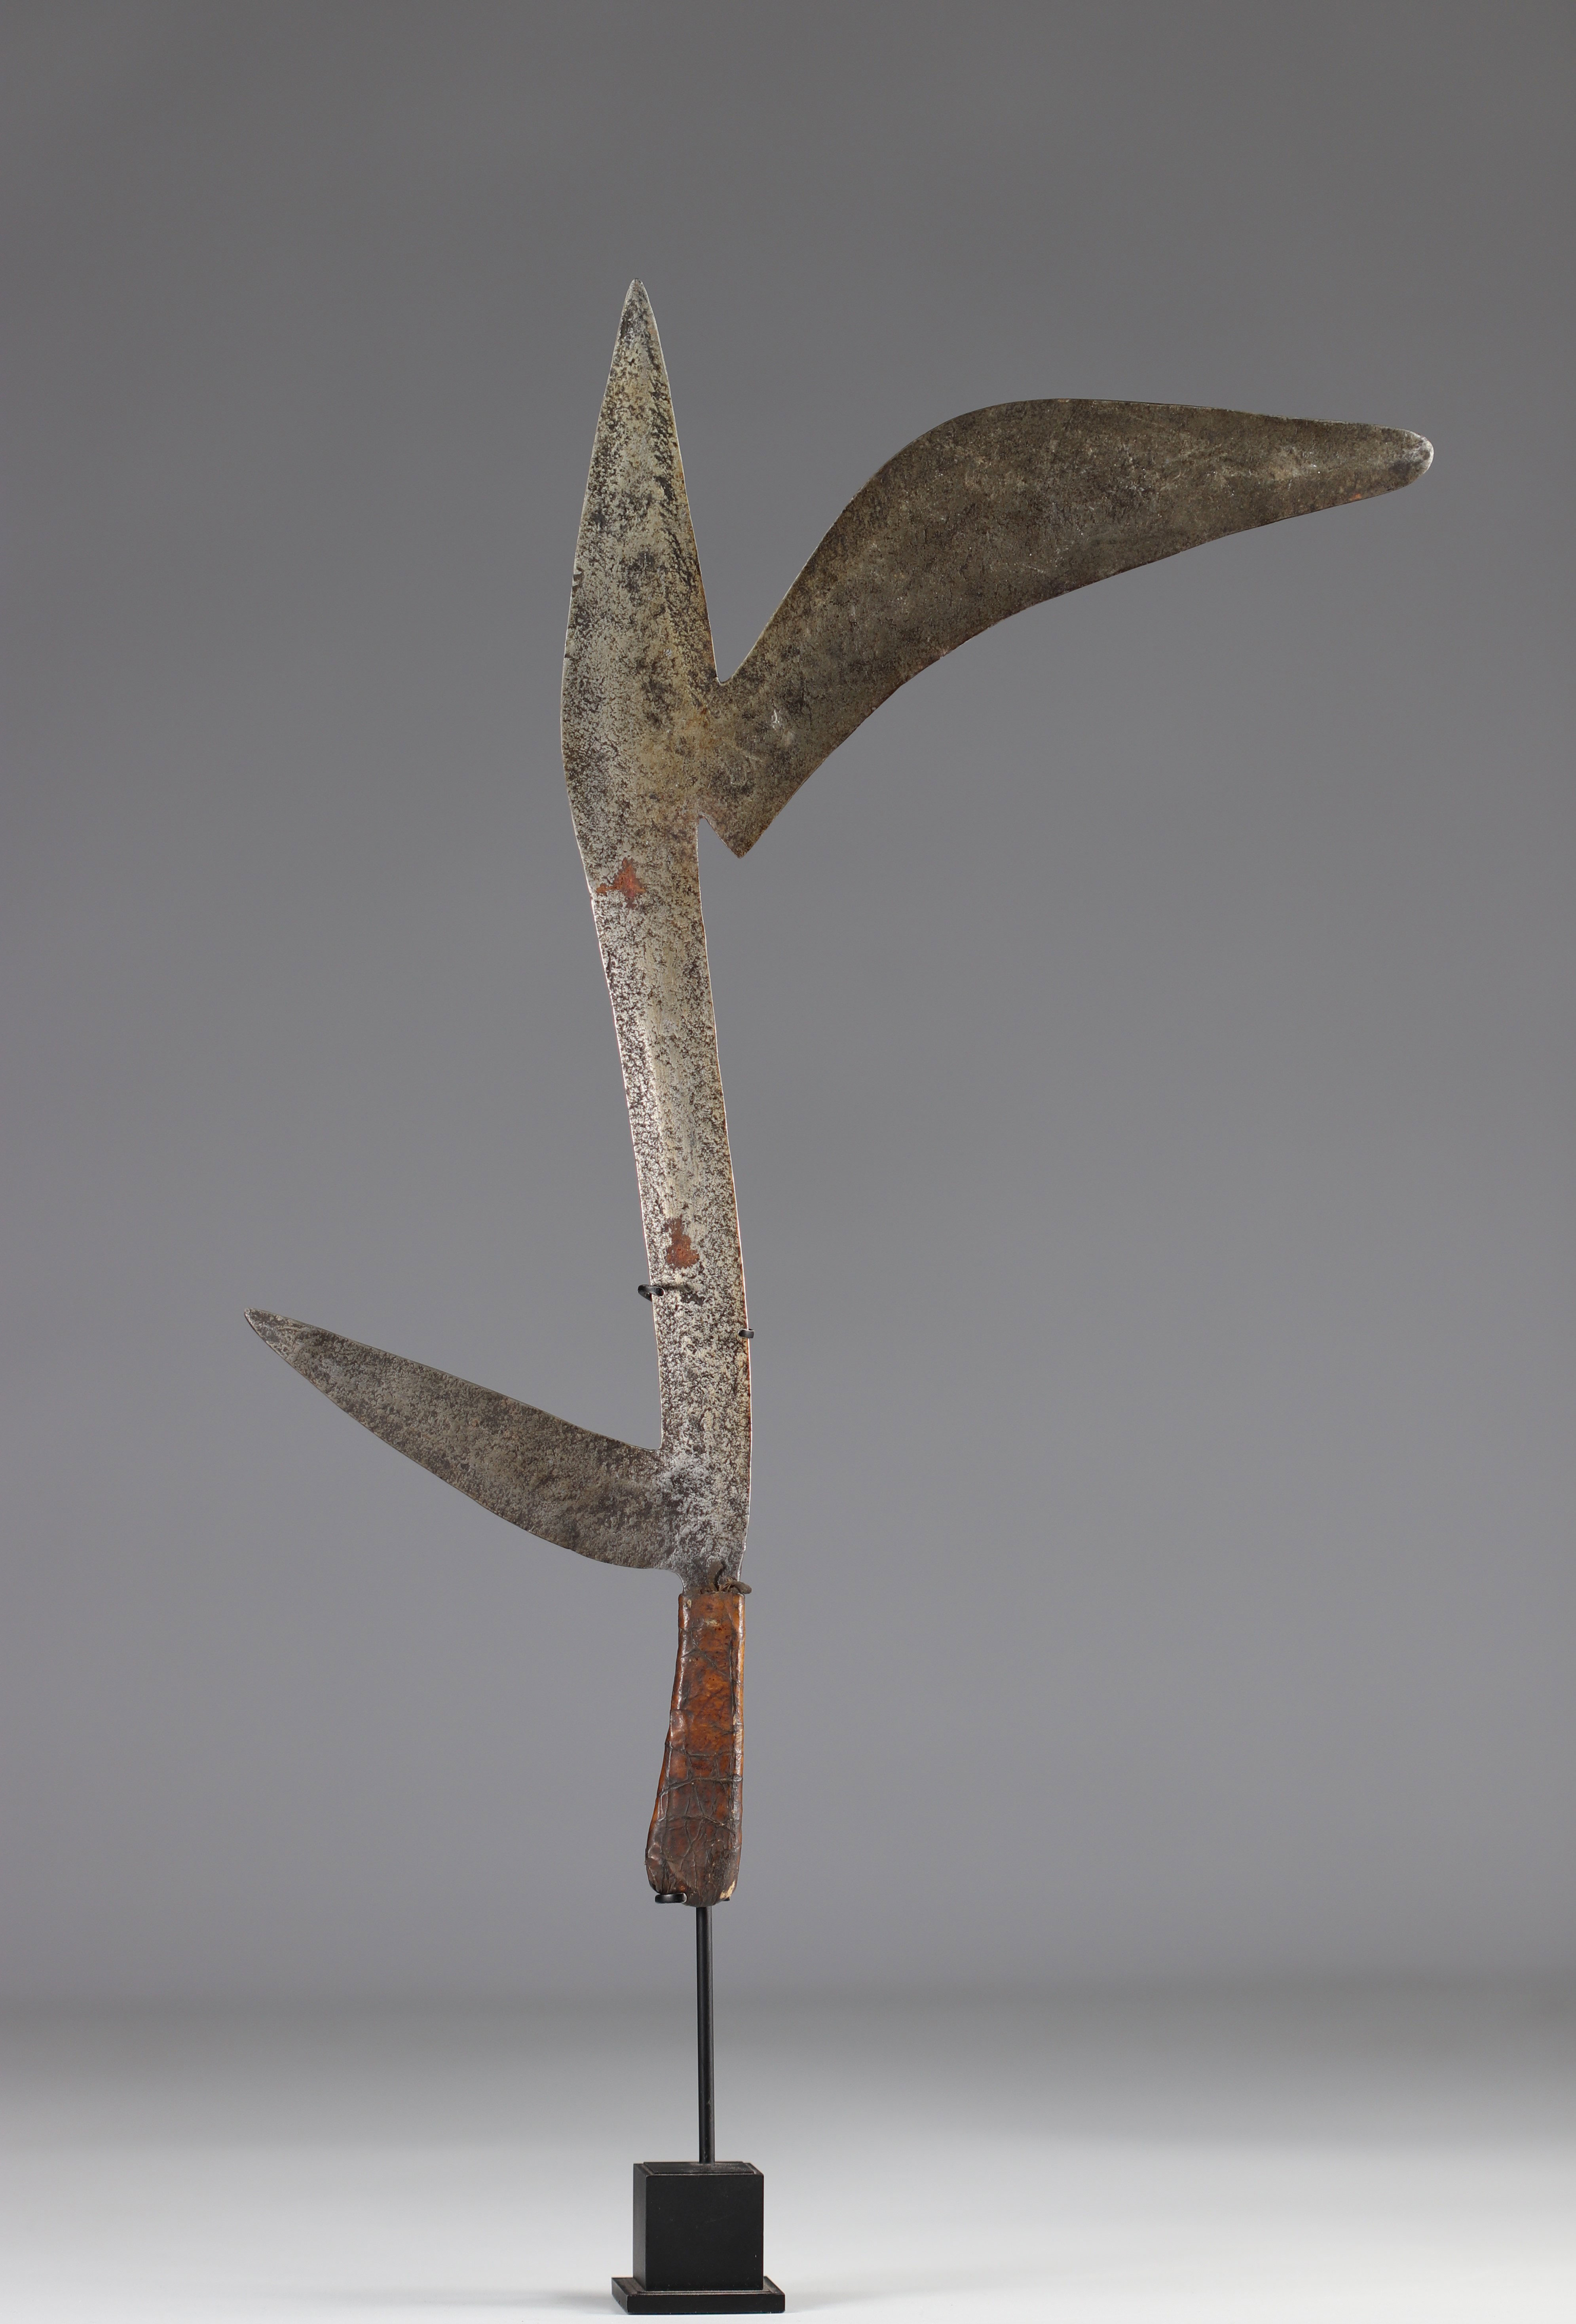 Bandia throwing knife early 20th century - ground floor - Image 2 of 2